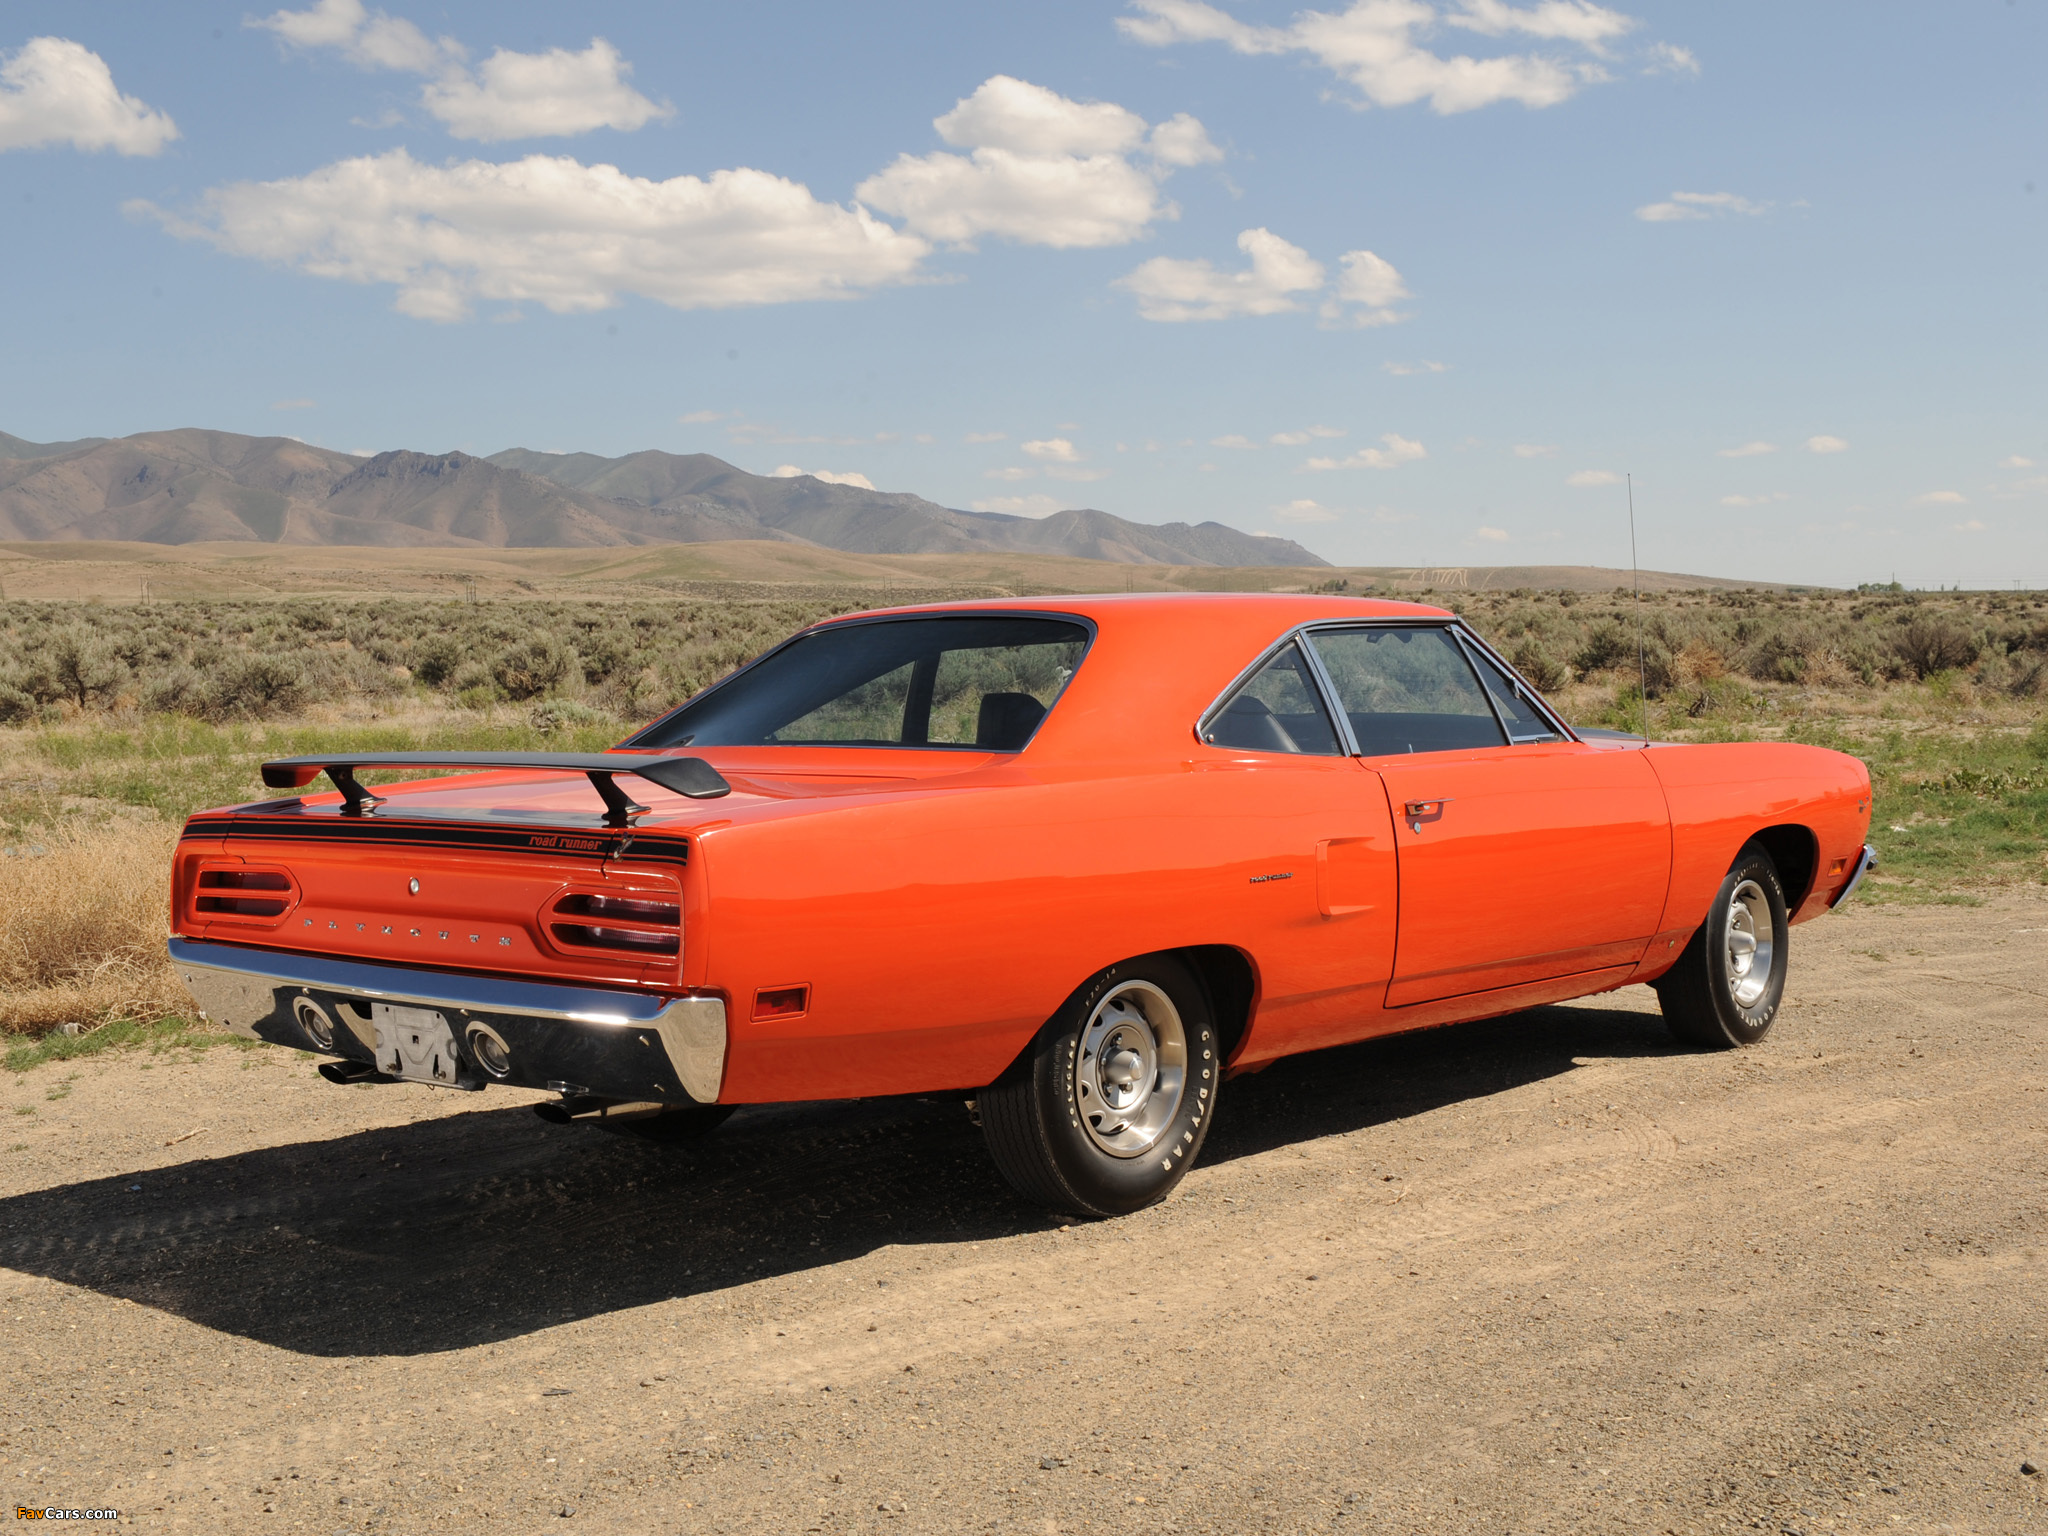 2048x1536 - Plymouth Road Runner Wallpapers 12